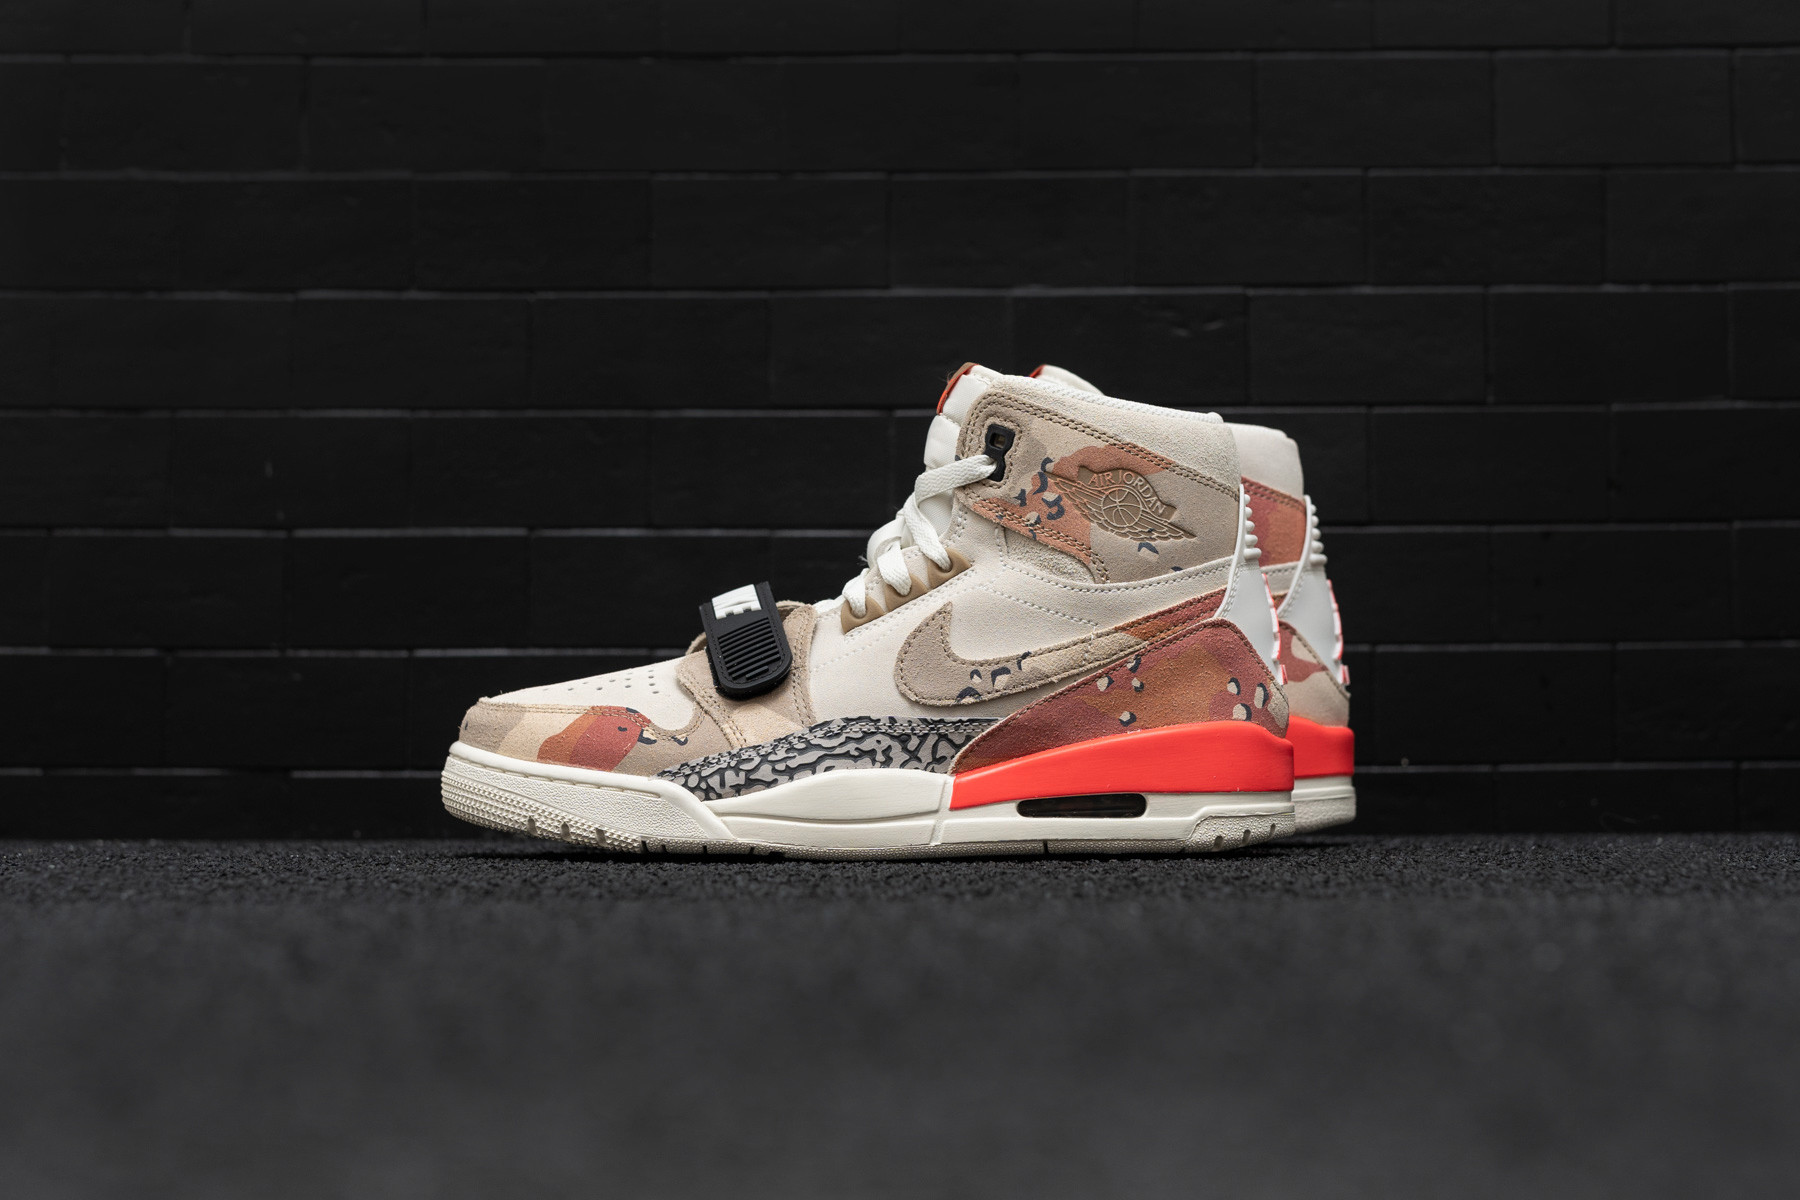 jordan AIR JORDAN LEGACY 312 SAILDESERT CAMO INFRARED 23